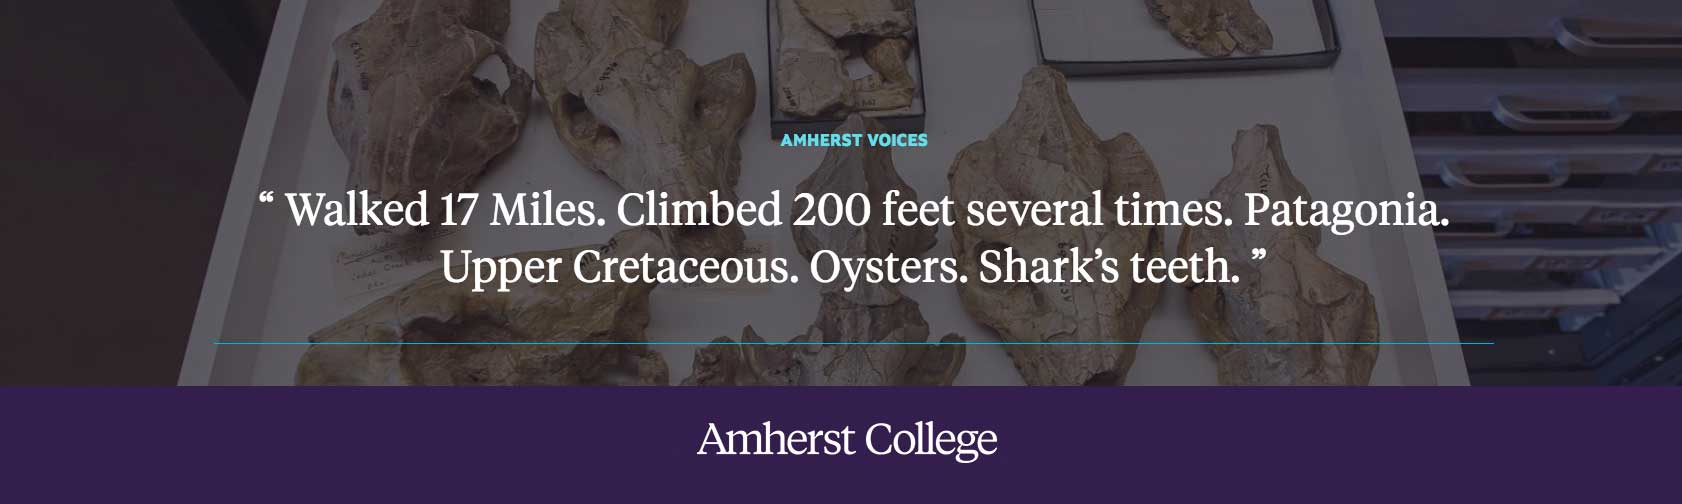 "Quote by Waldo Shumway: ""Walked 17 Miles. Climbed 200 feet several times. Patagonia. Upper Cretaceous. Oysters. Shark's teeth. """